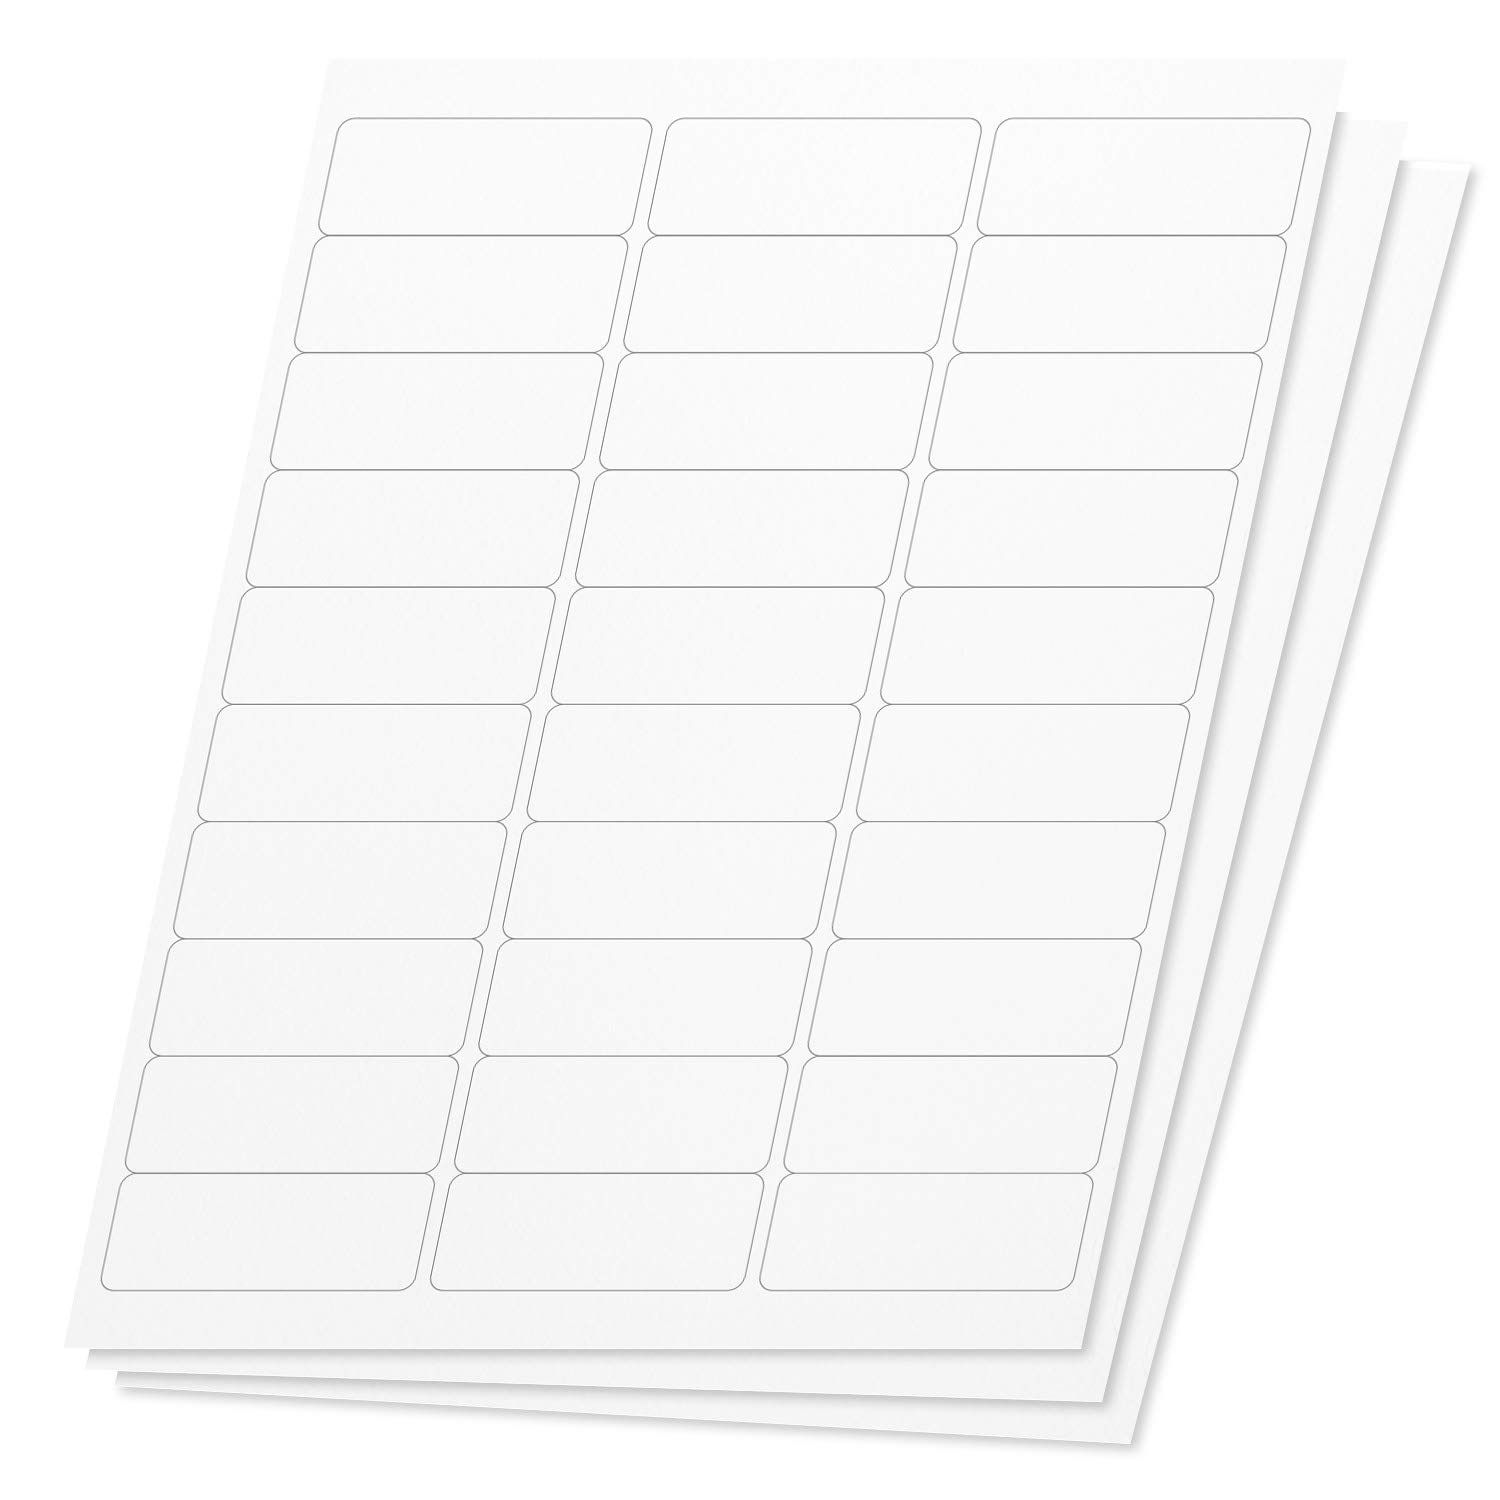 001 Stunning Microsoft Word Addres Label Template 30 Per Sheet Concept Full